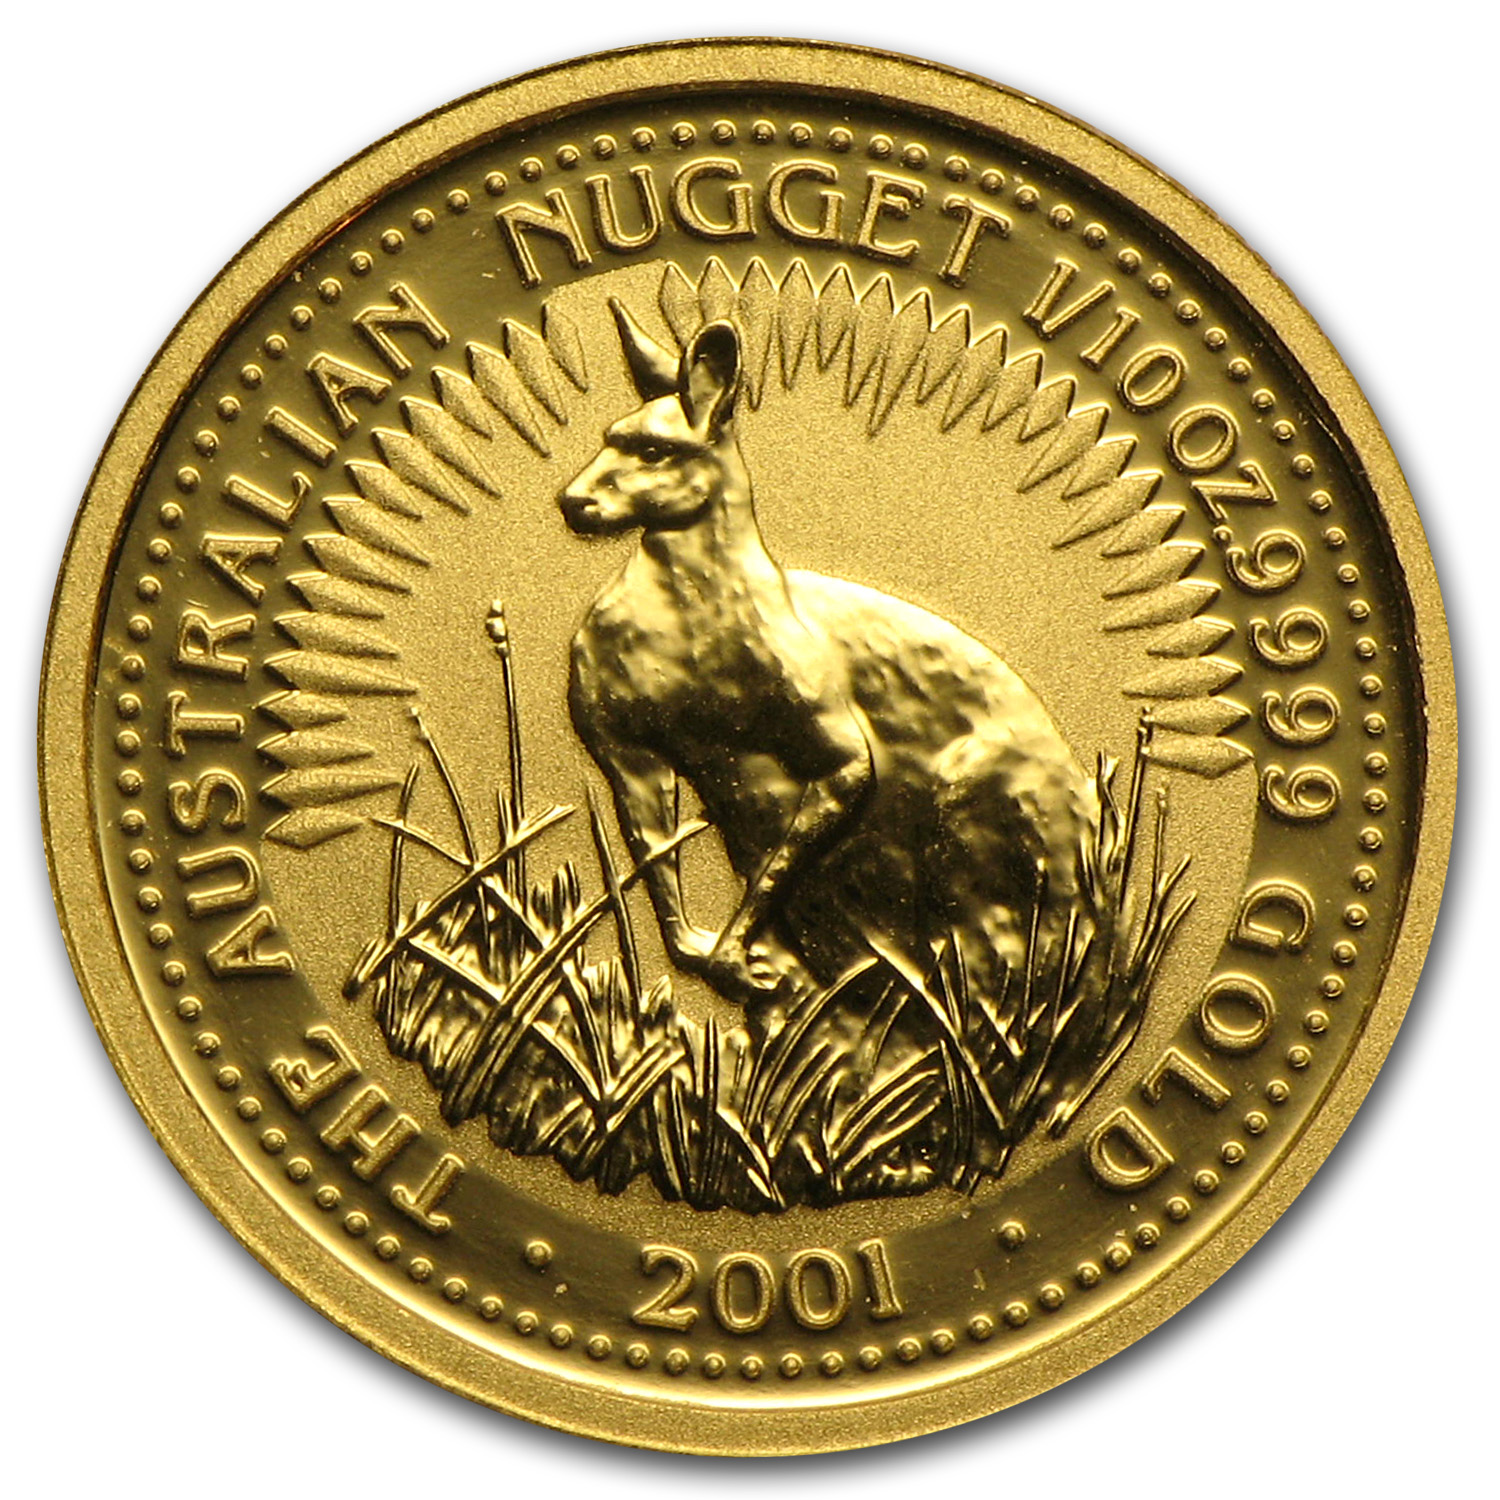 2001 Australia 1/10 oz Gold Nugget